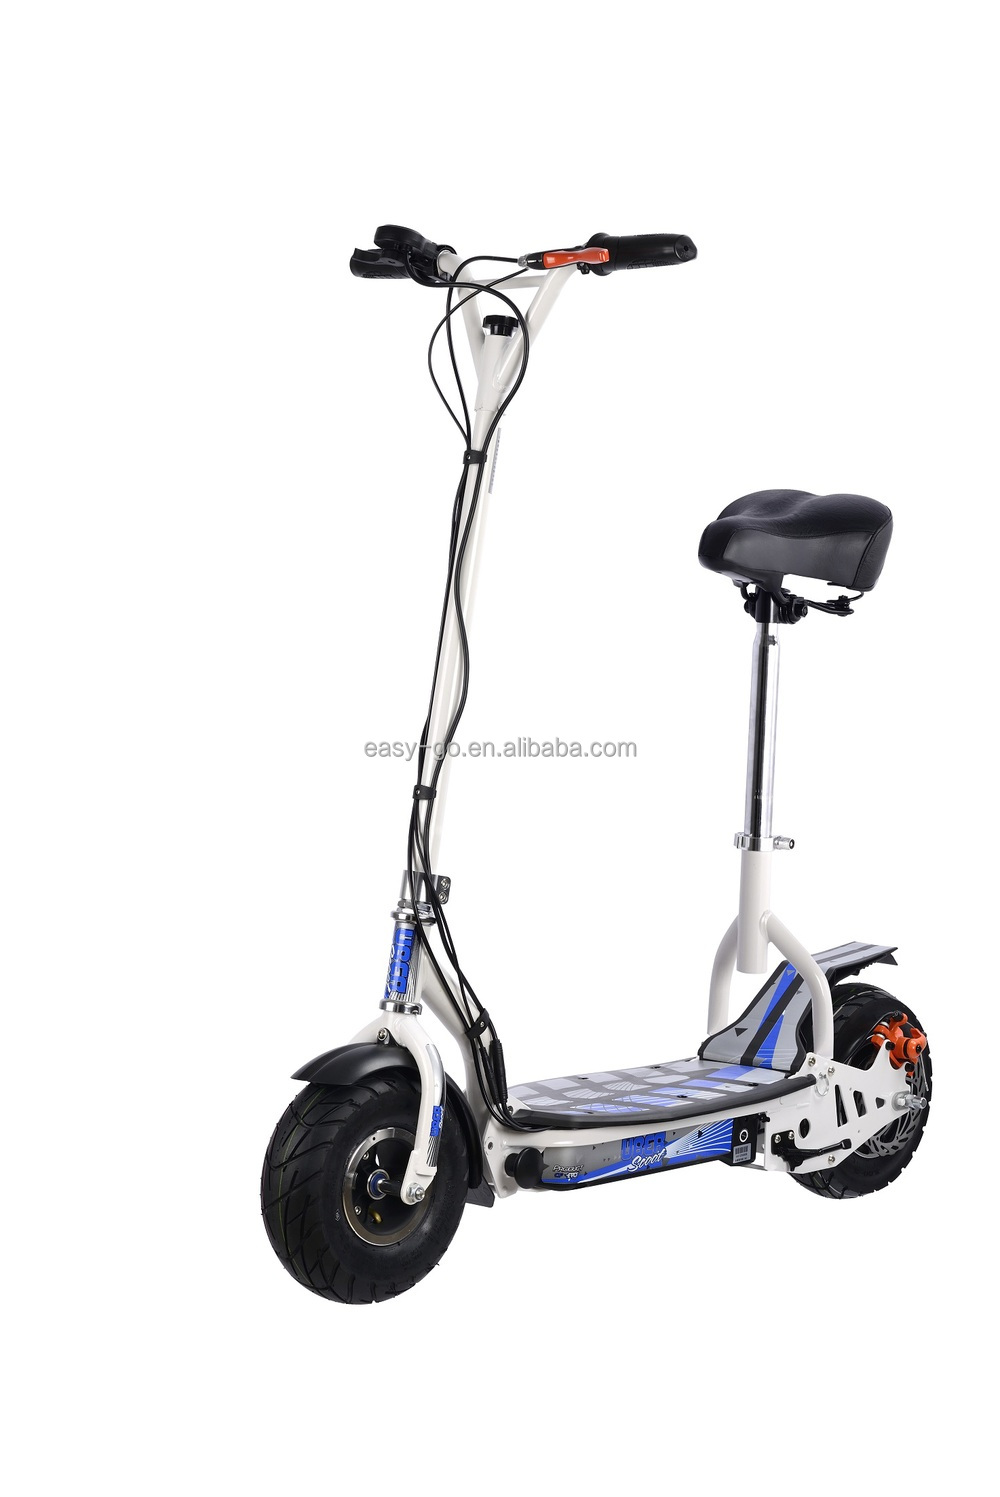 2015 Uber Scoot 300w,36v Scooter With Hub Motor For Teenager